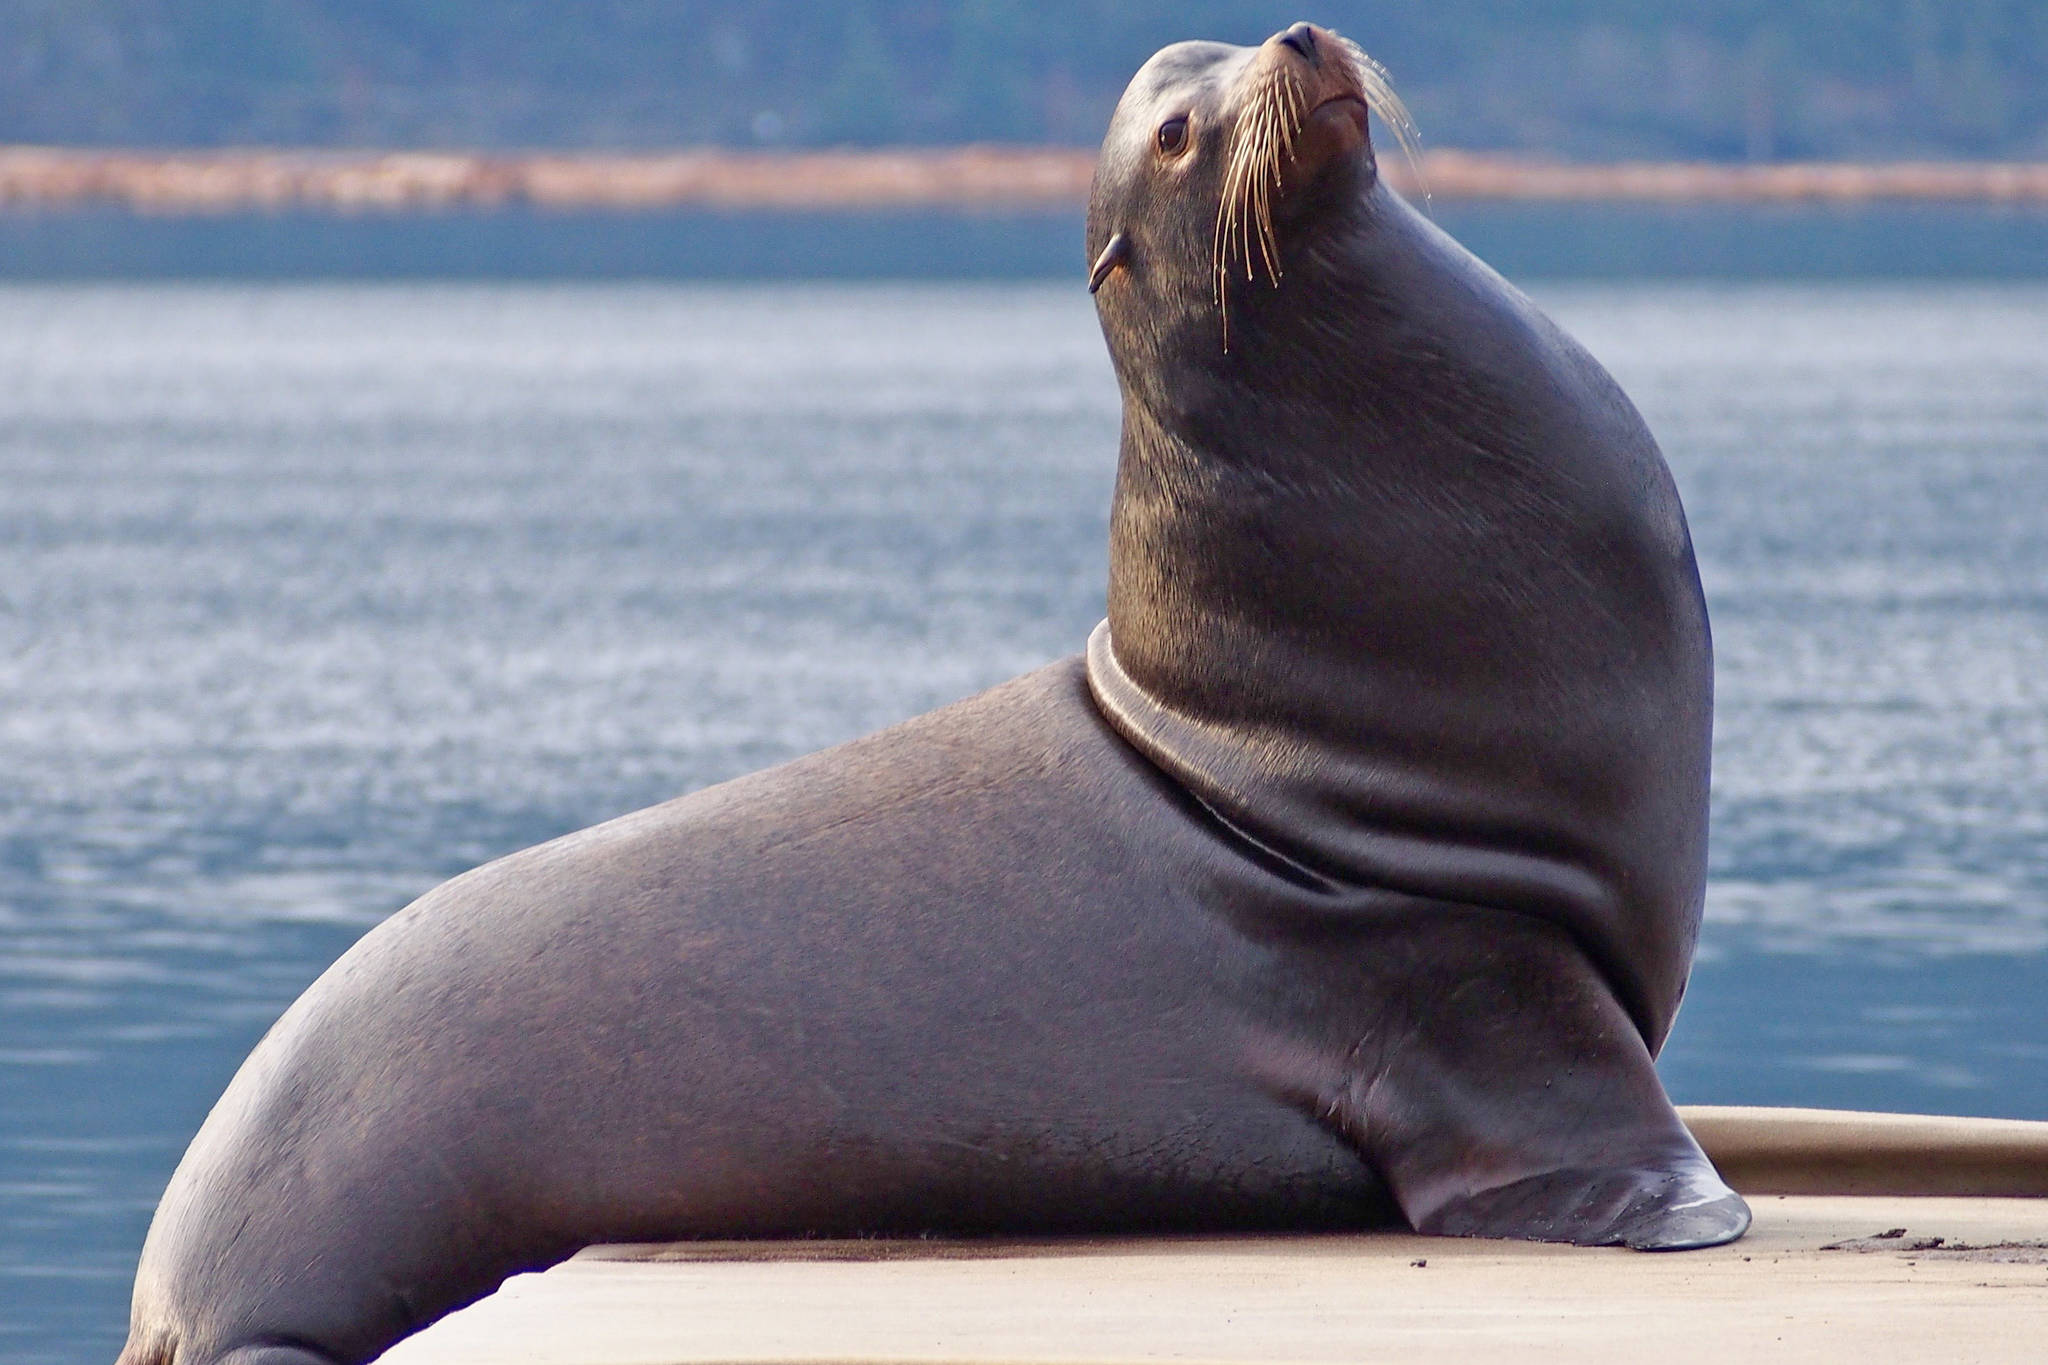 A California sea lion visits the dock at Port Alberni's Maritime Discovery Centre. Sea lions are showing up in Alberni Inlet larger numbers, threatening salmon, say fishers. MIKE YOUDS PHOTO